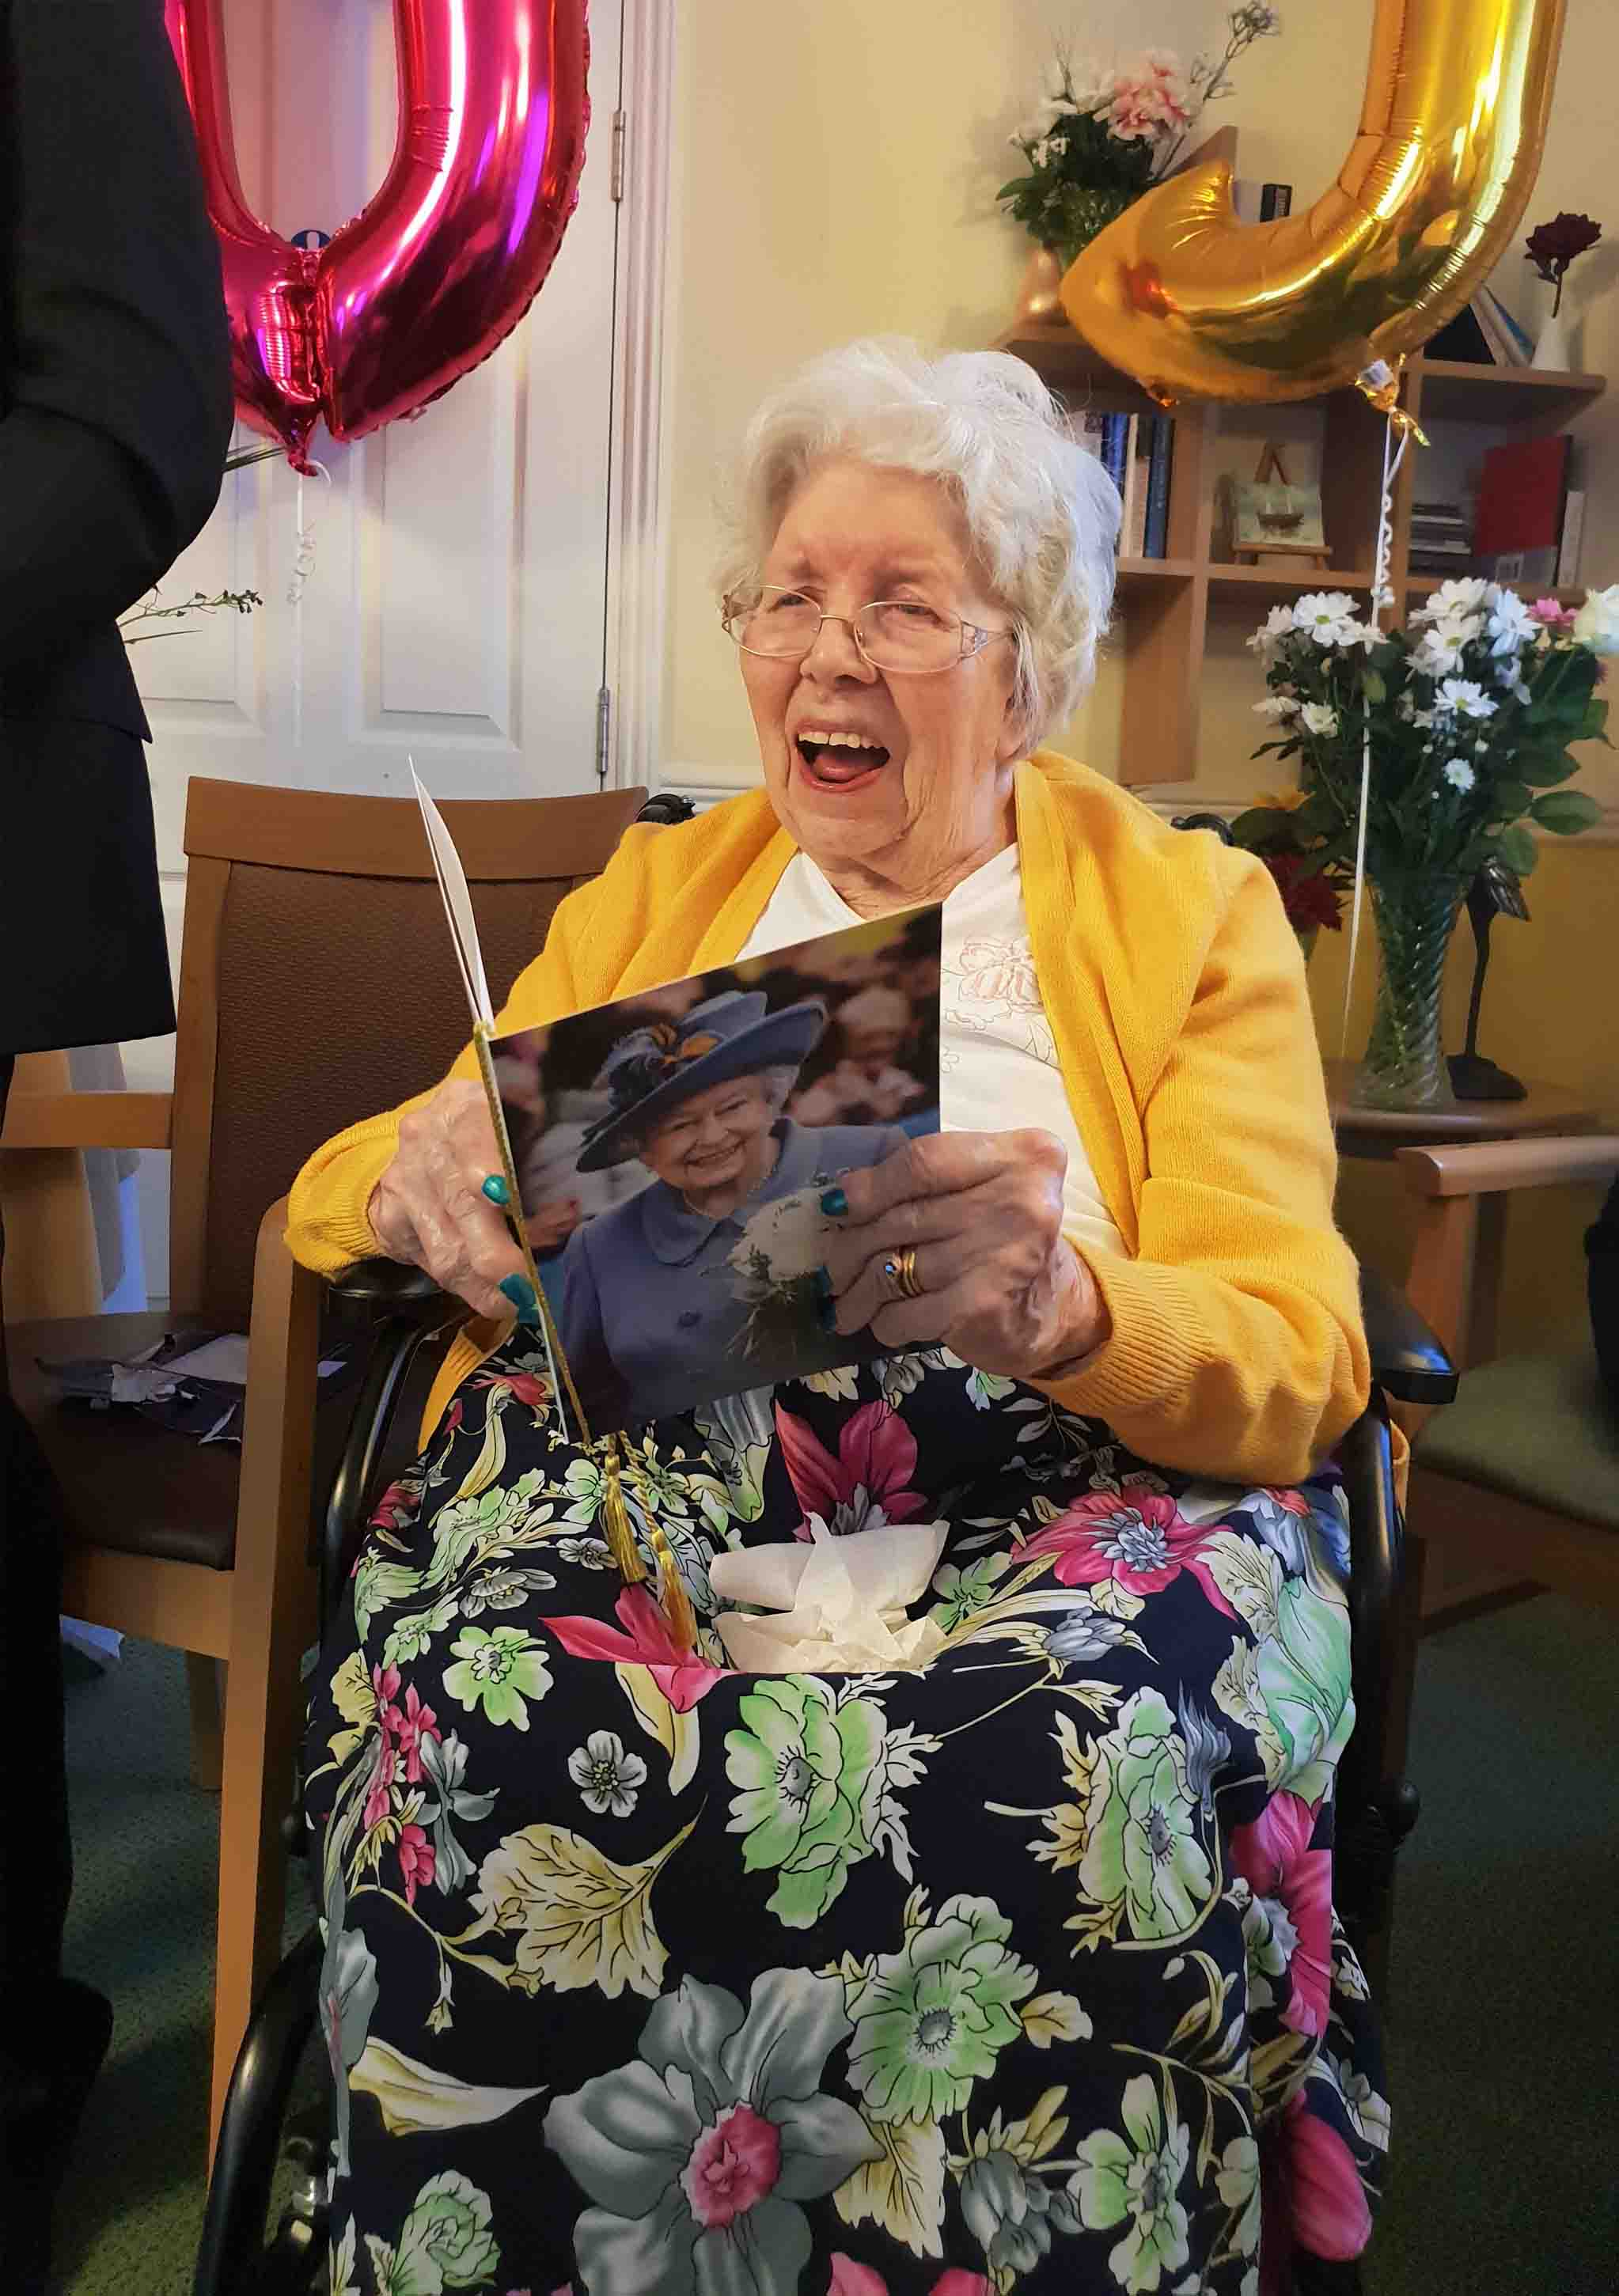 Joyce turns 100 at The Wimborne Care Home!